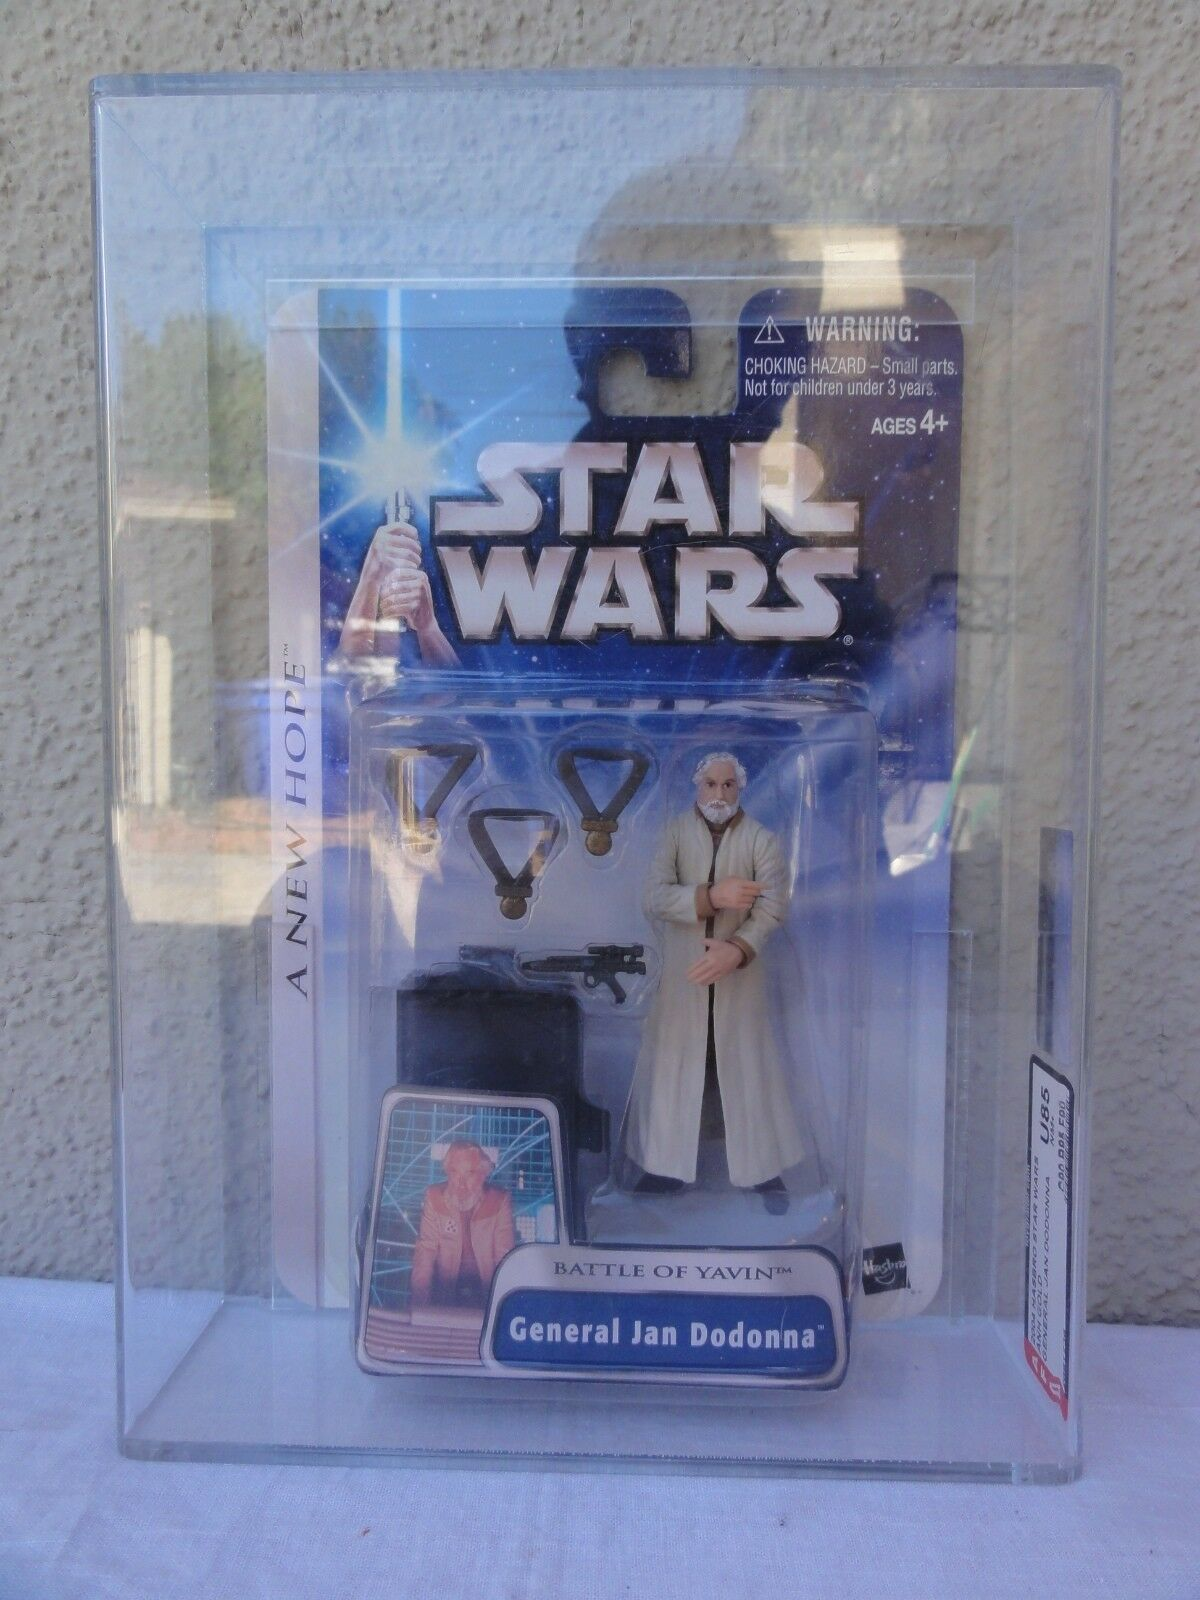 Star - wars - 2004 anh general jan dodamen schlacht yavin afa versiegelt mib - box